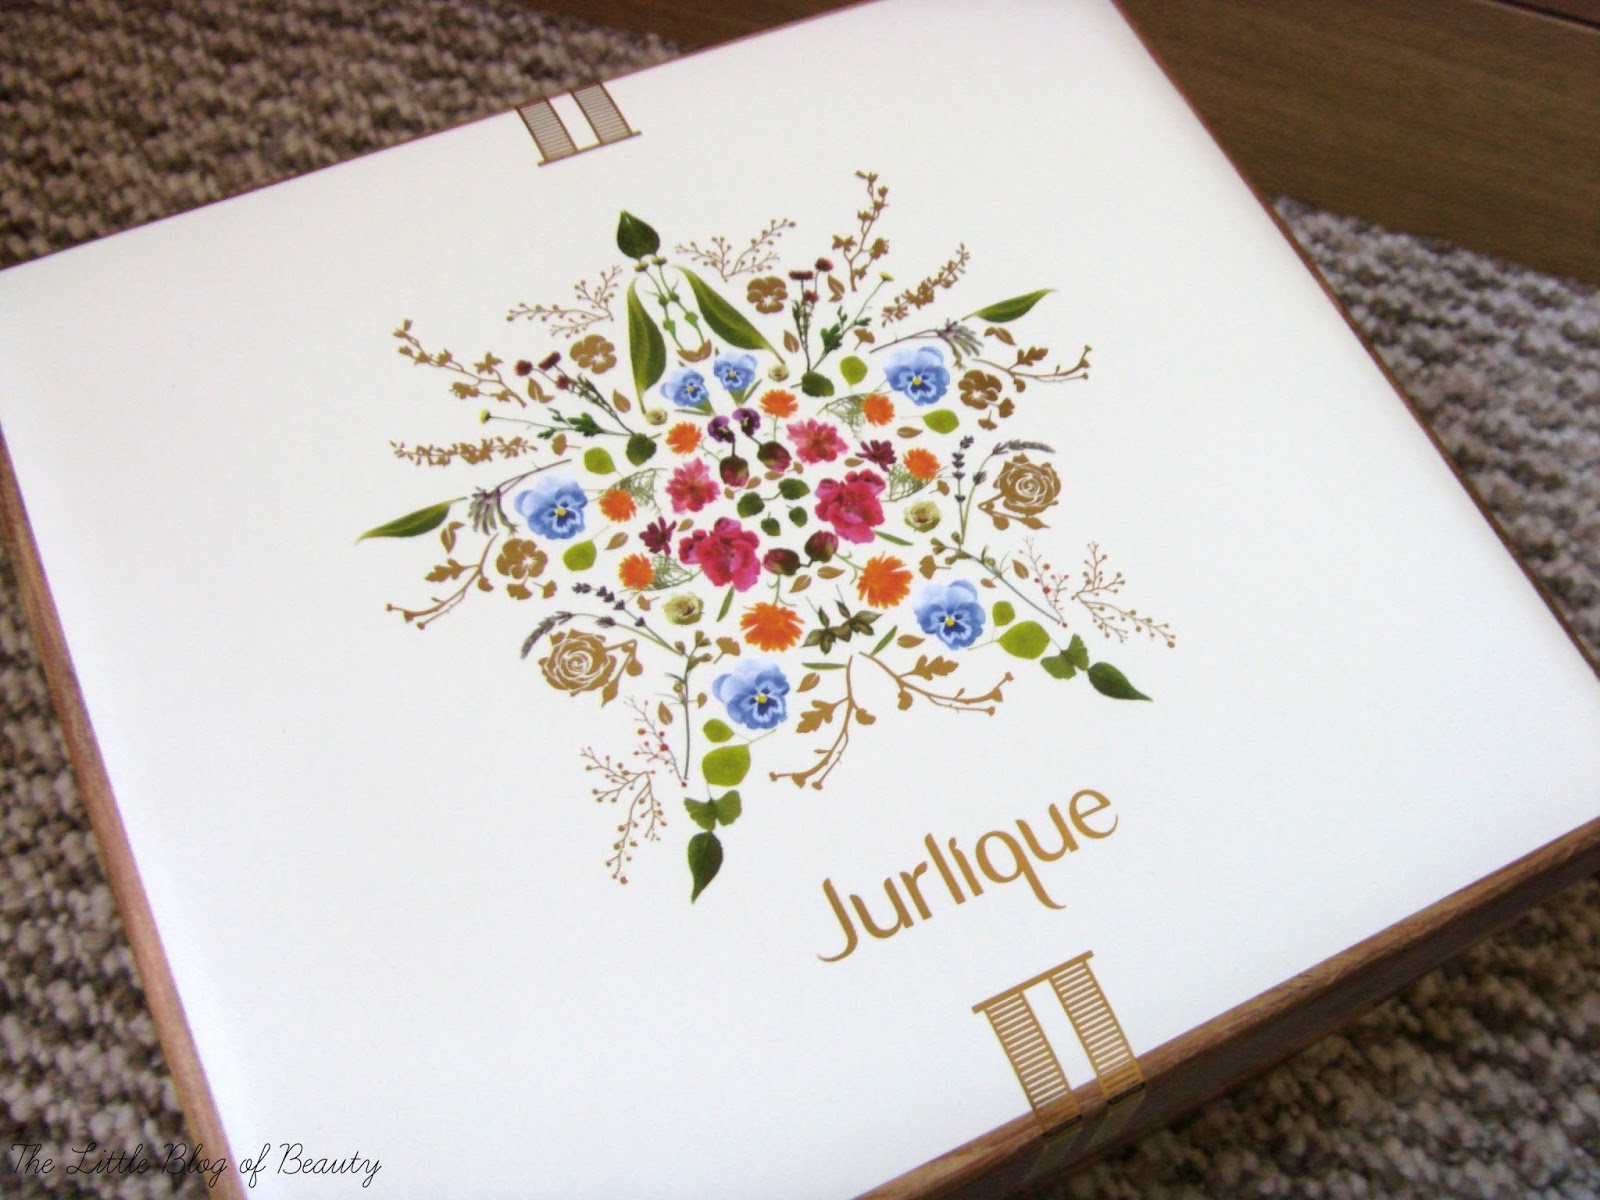 Jurlique Glow ultimate face & body collection